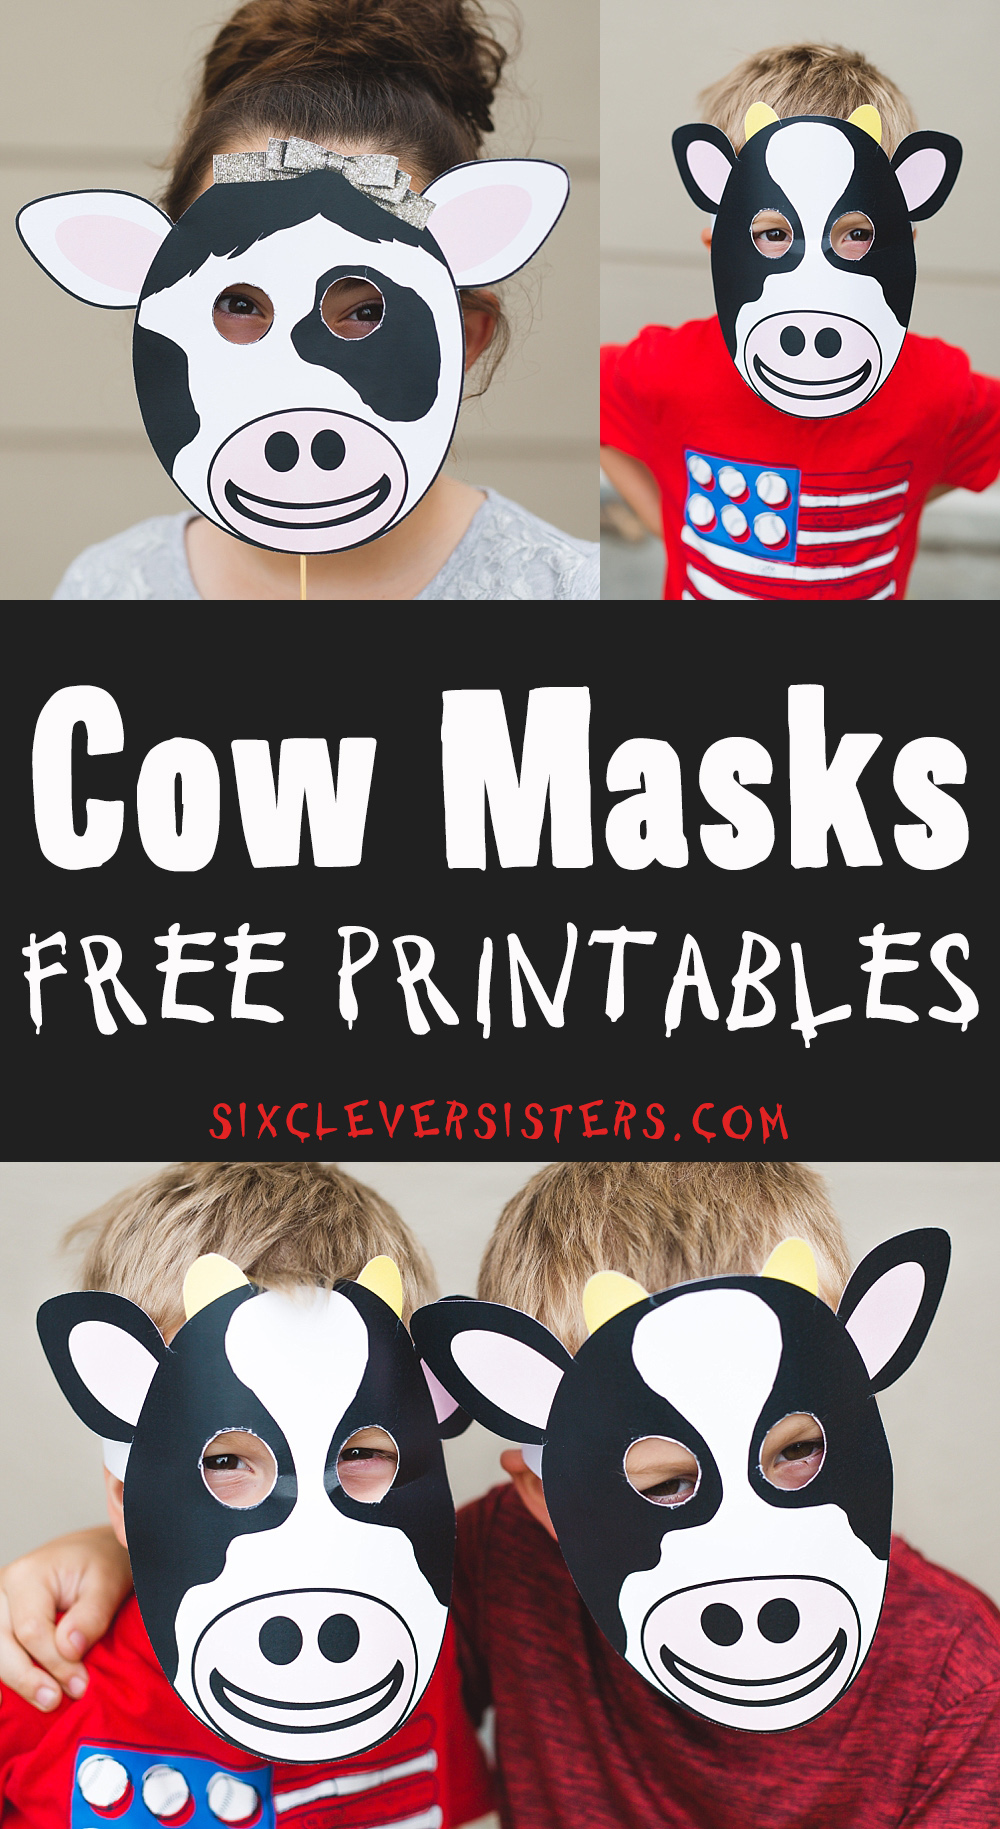 graphic about Cow Appreciation Day Printable called Chick Fil A Cow Mask - 6 Good Sisters